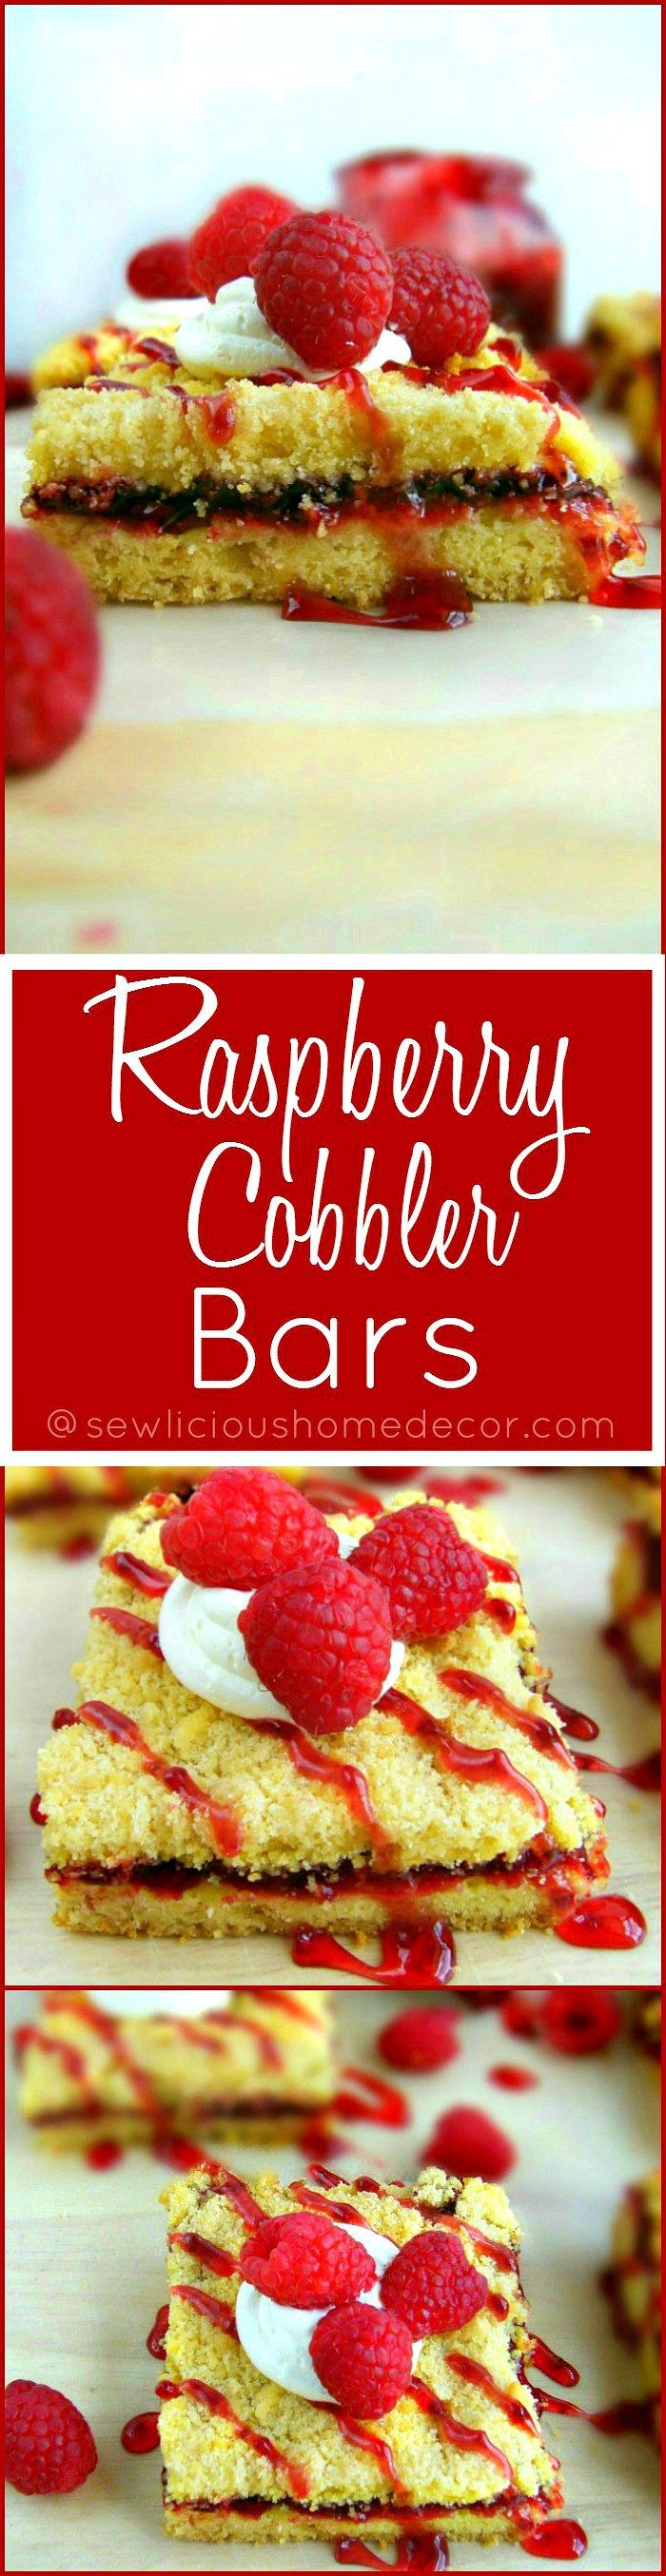 Best Quick and Easy Raspberry Cobbler Bars made with a yellow cake mix sewlicioushomedecor.com